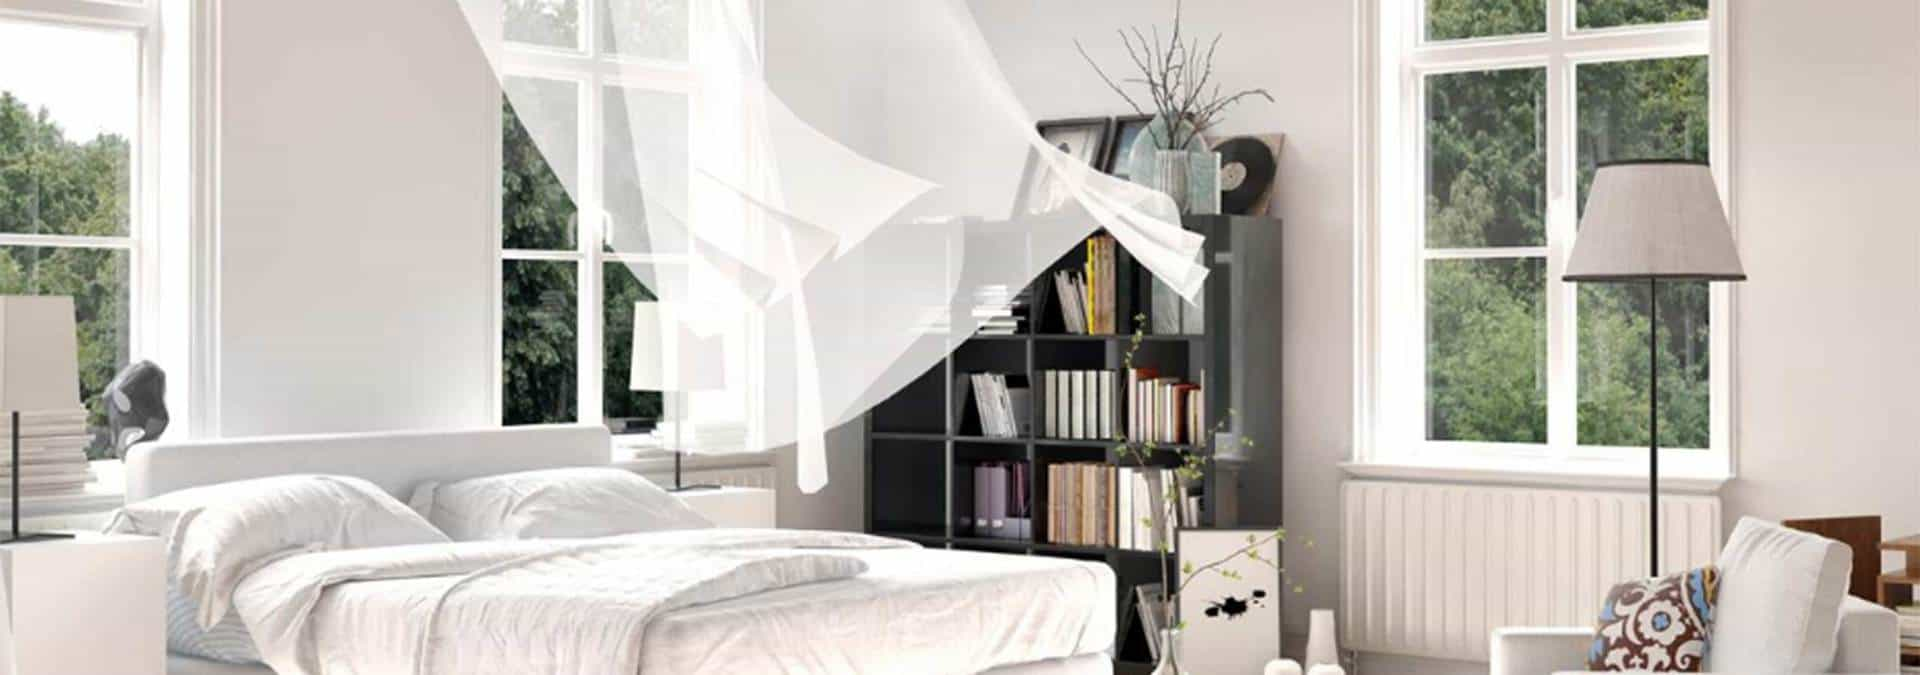 Bedroom with open window and fresh air blowing in